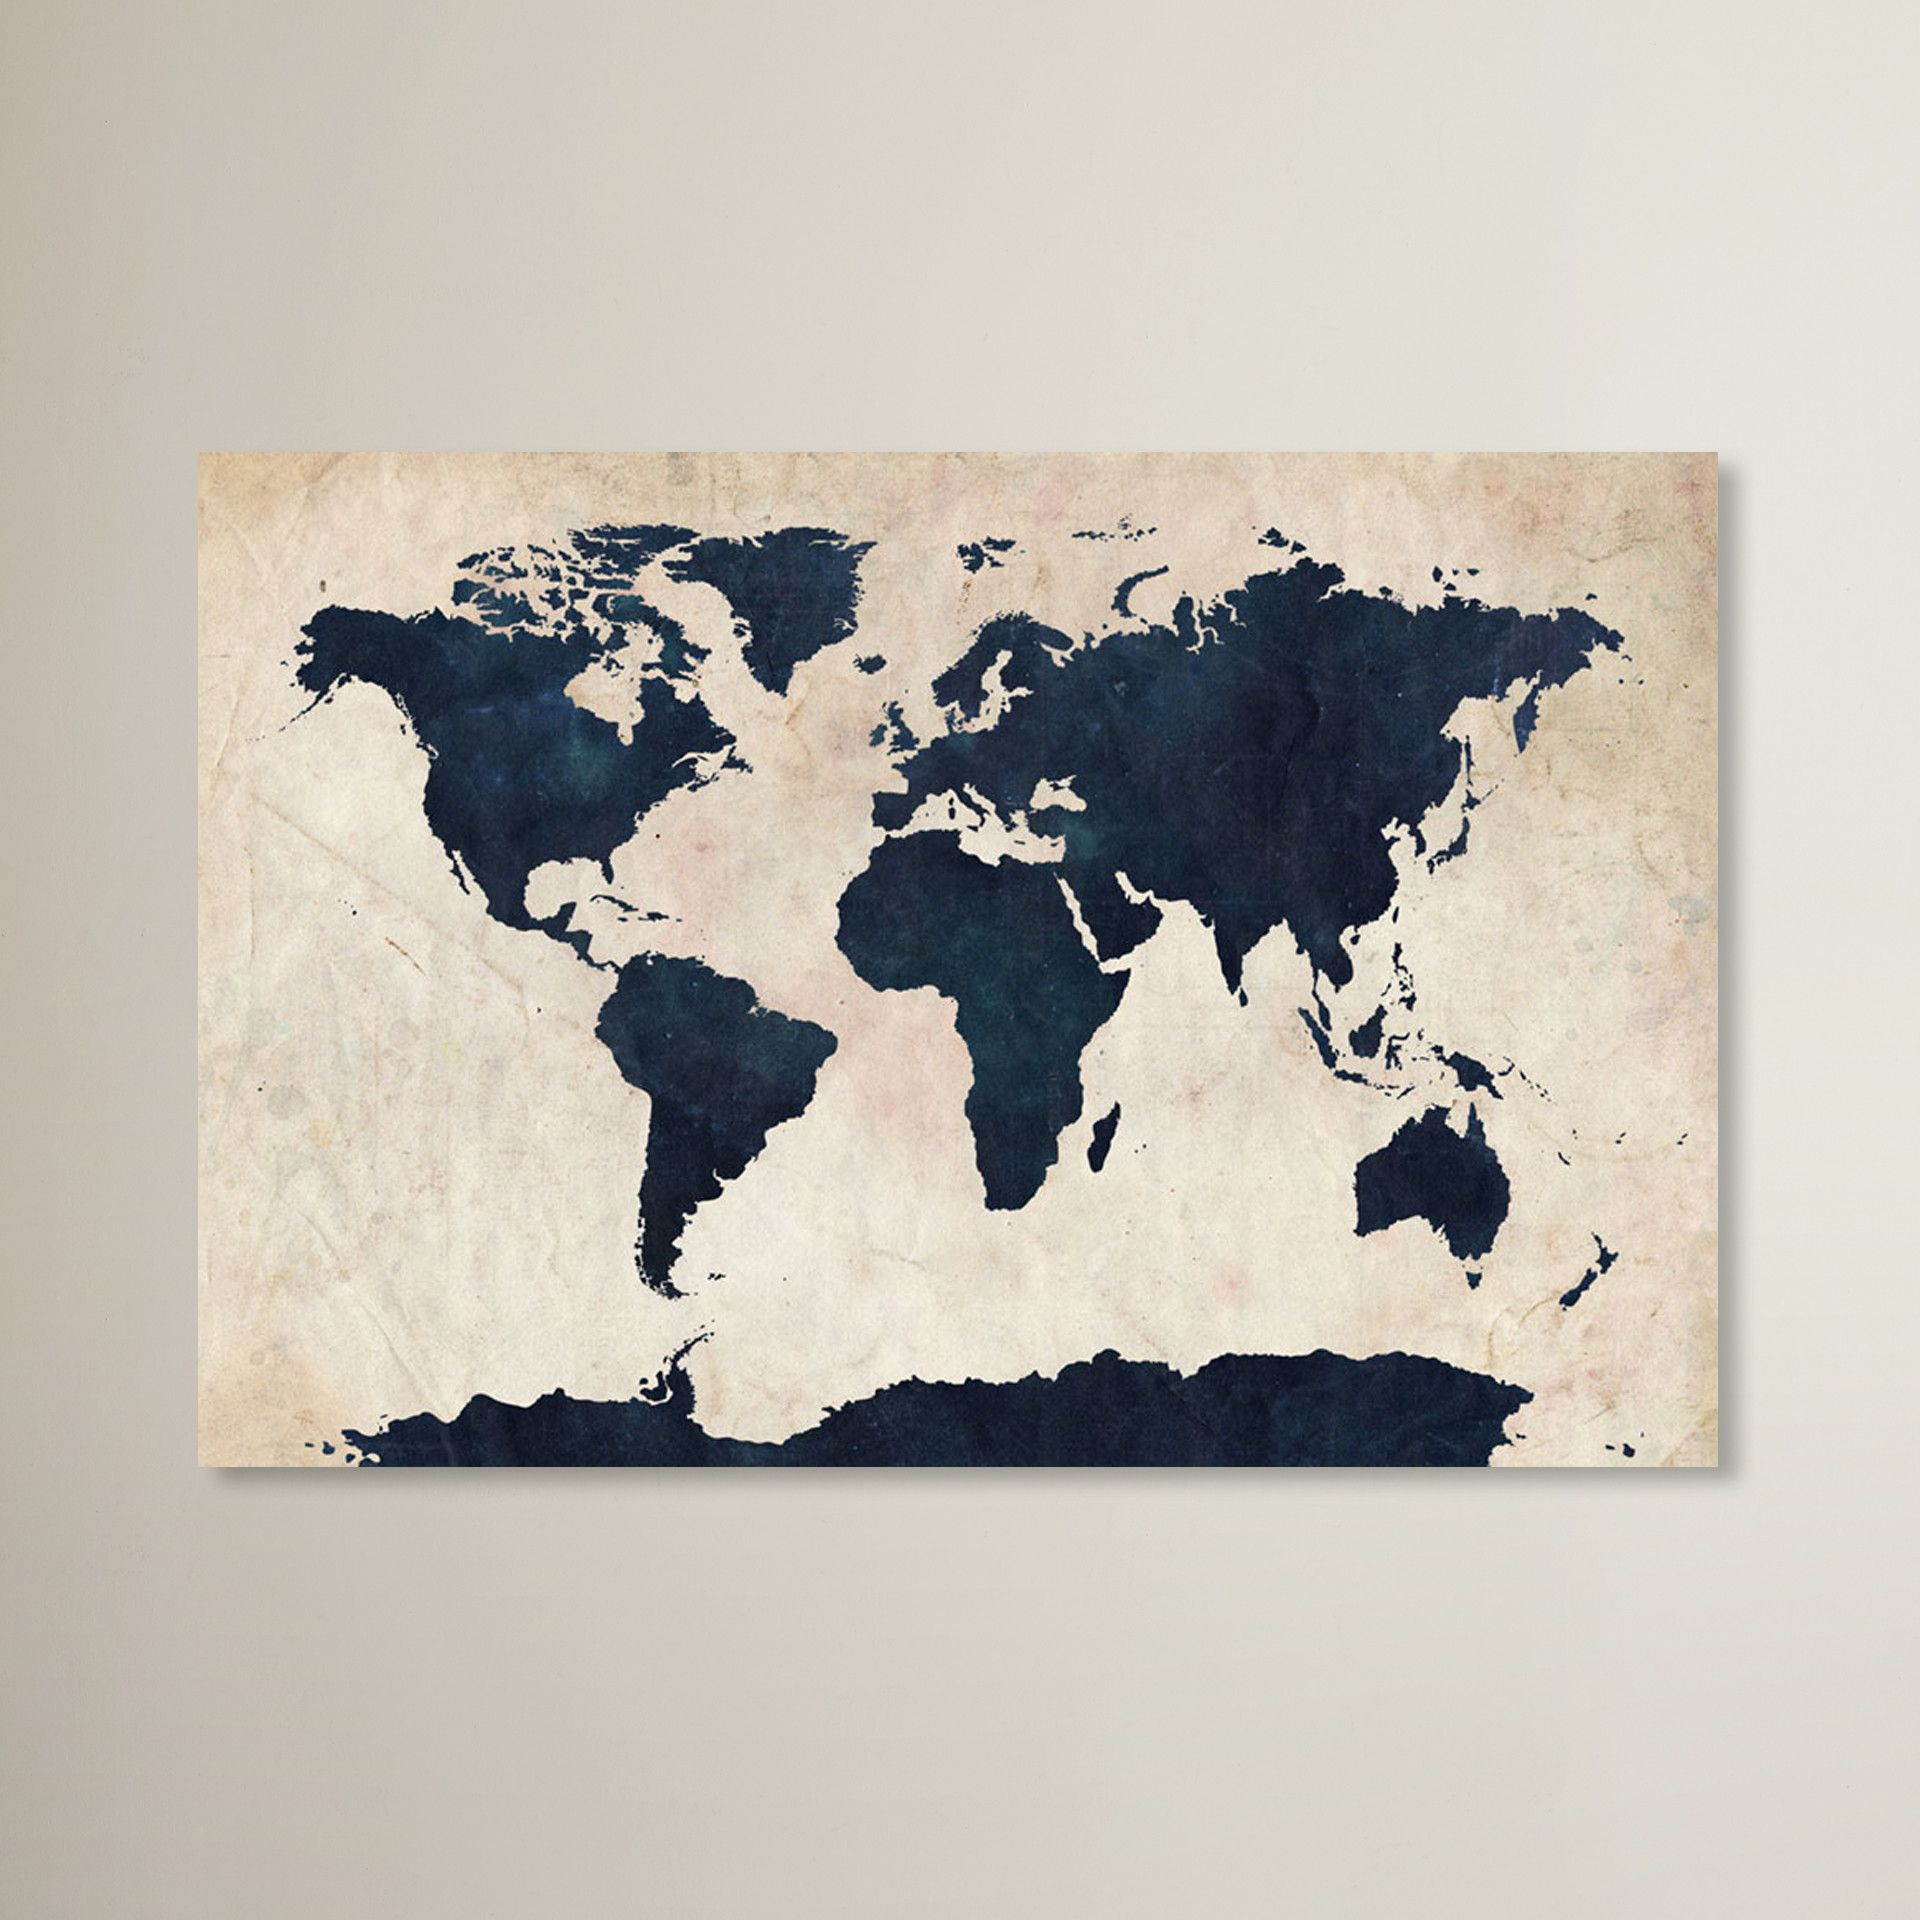 Trent austin design world map navy by michael thompsett graphic trent austin design world map navy by michael thompsett graphic art on wrapped canvas gumiabroncs Choice Image